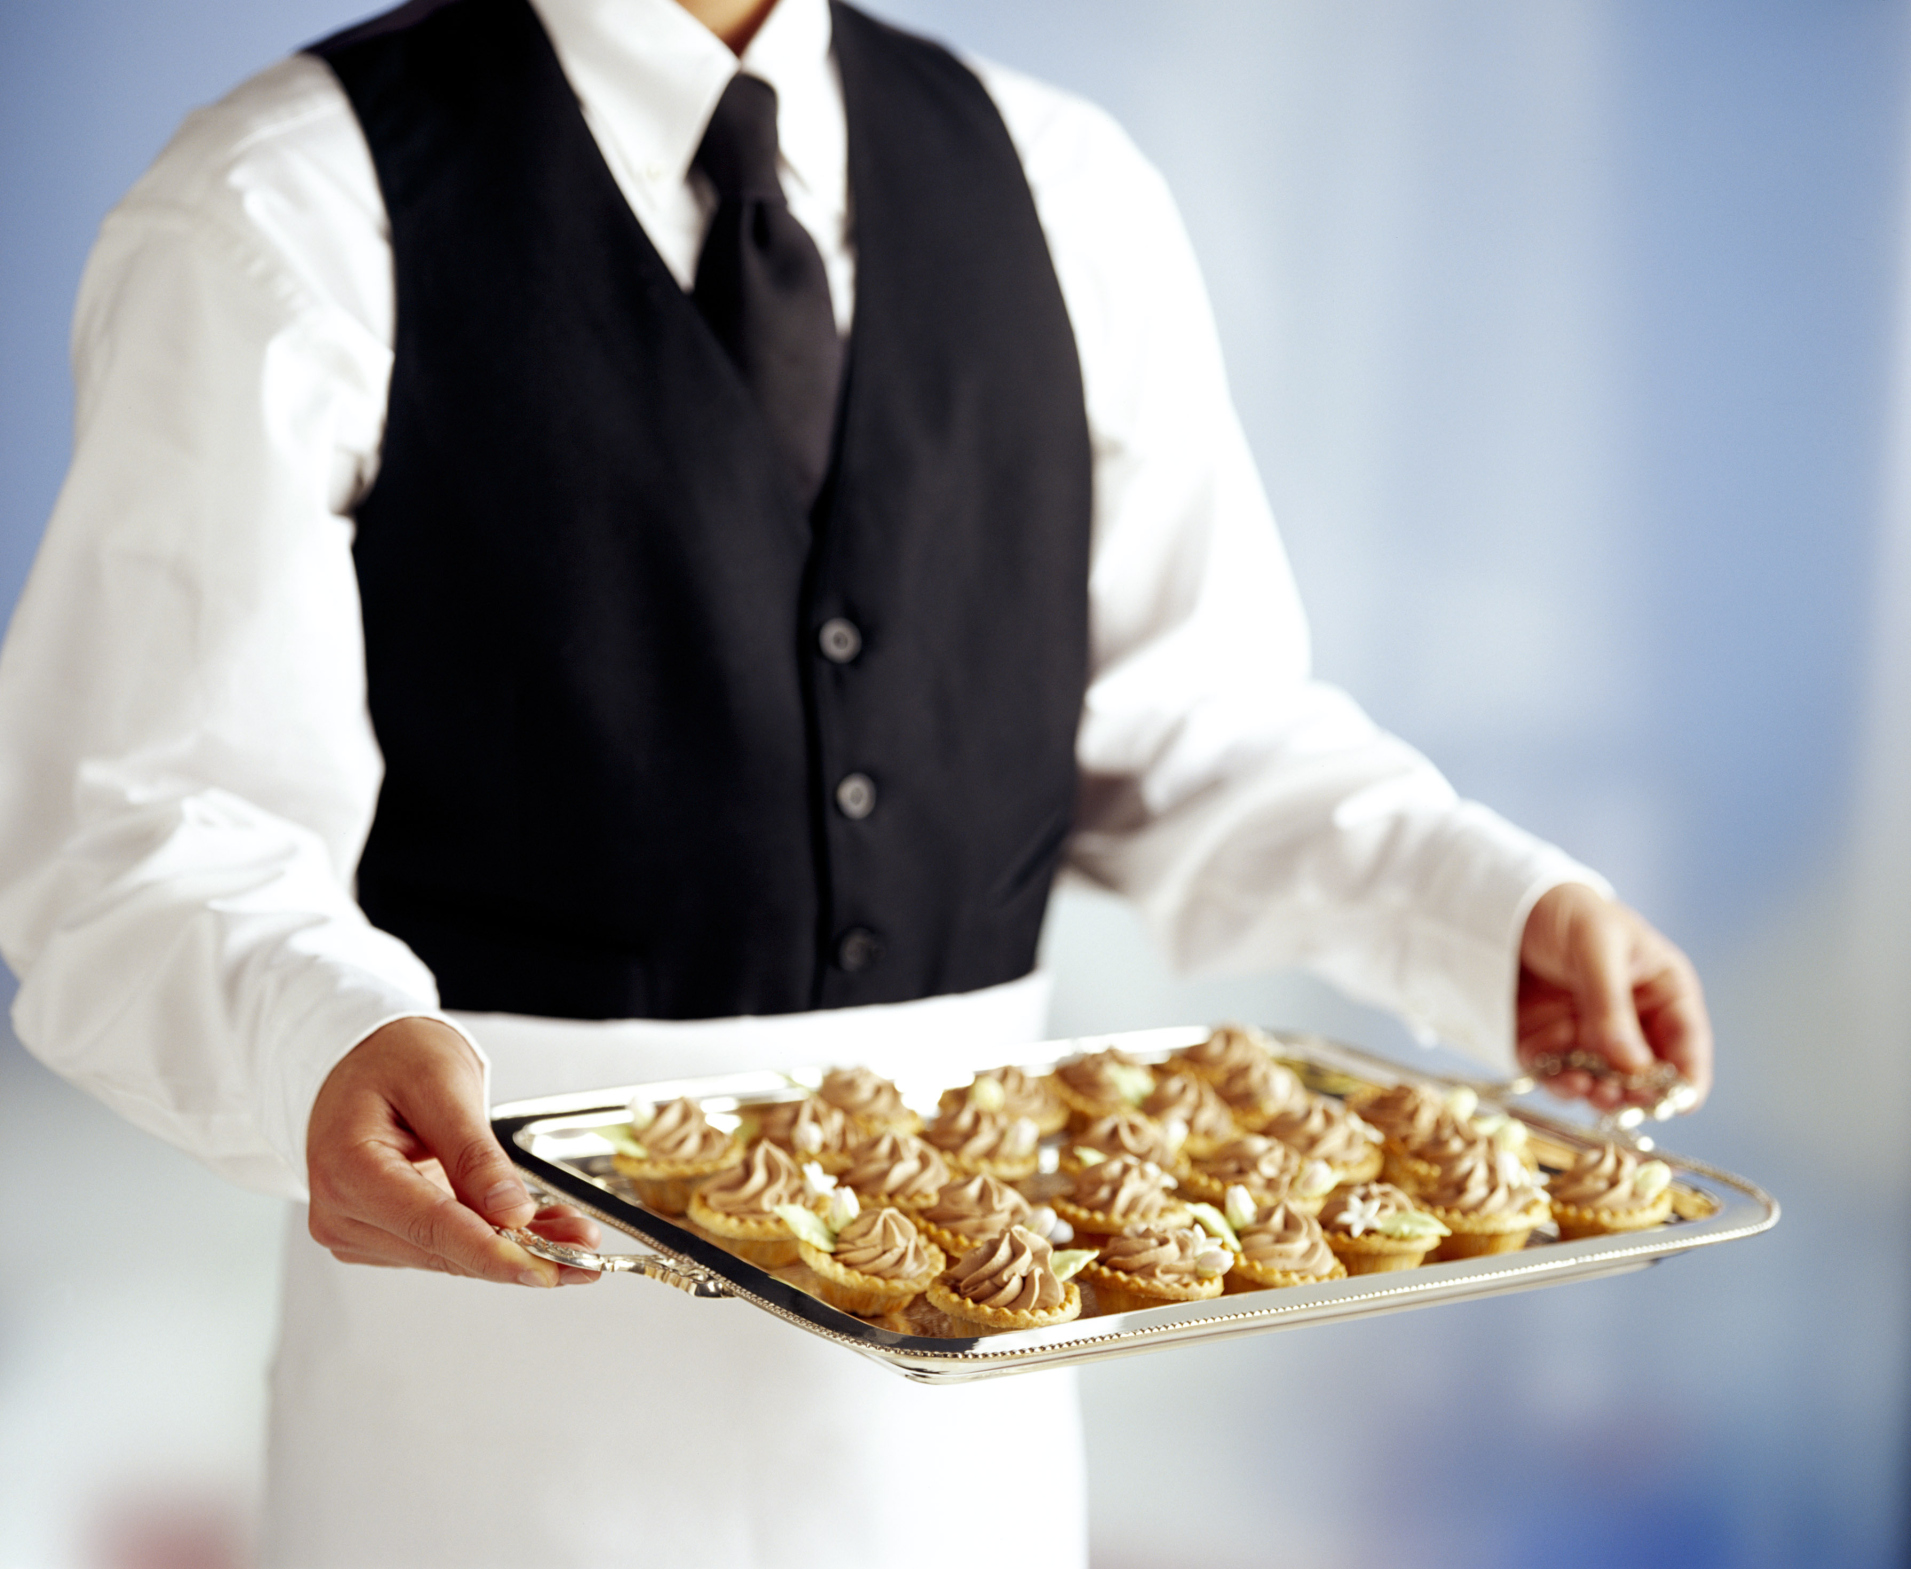 Tipping Guidelines For Catered Events